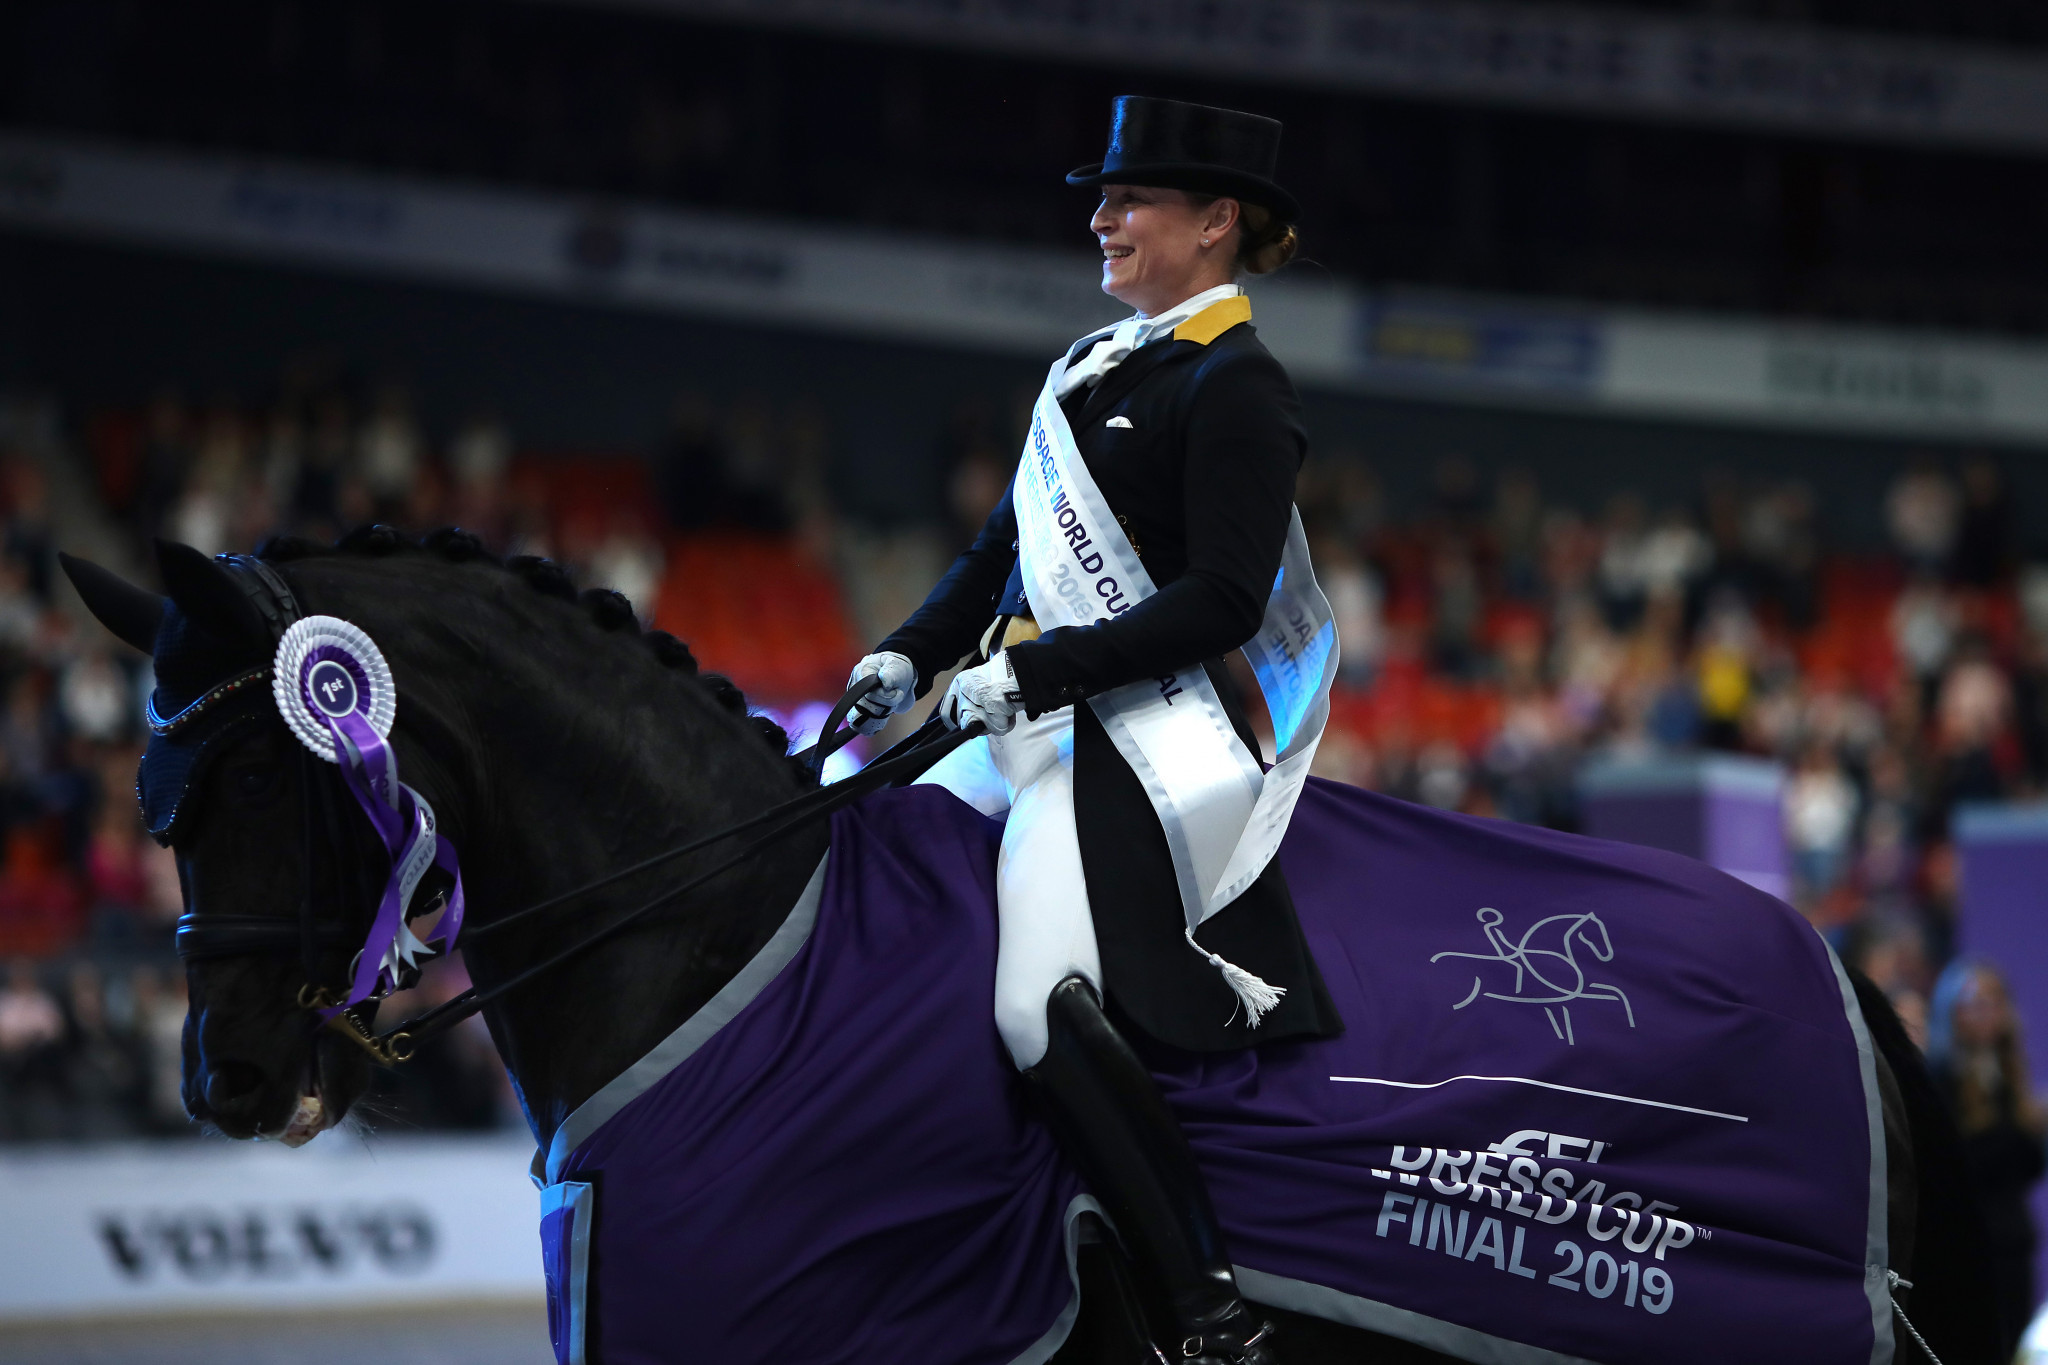 Hosts Germany triumph at FEI Dressage Nations Cup event in Aachen